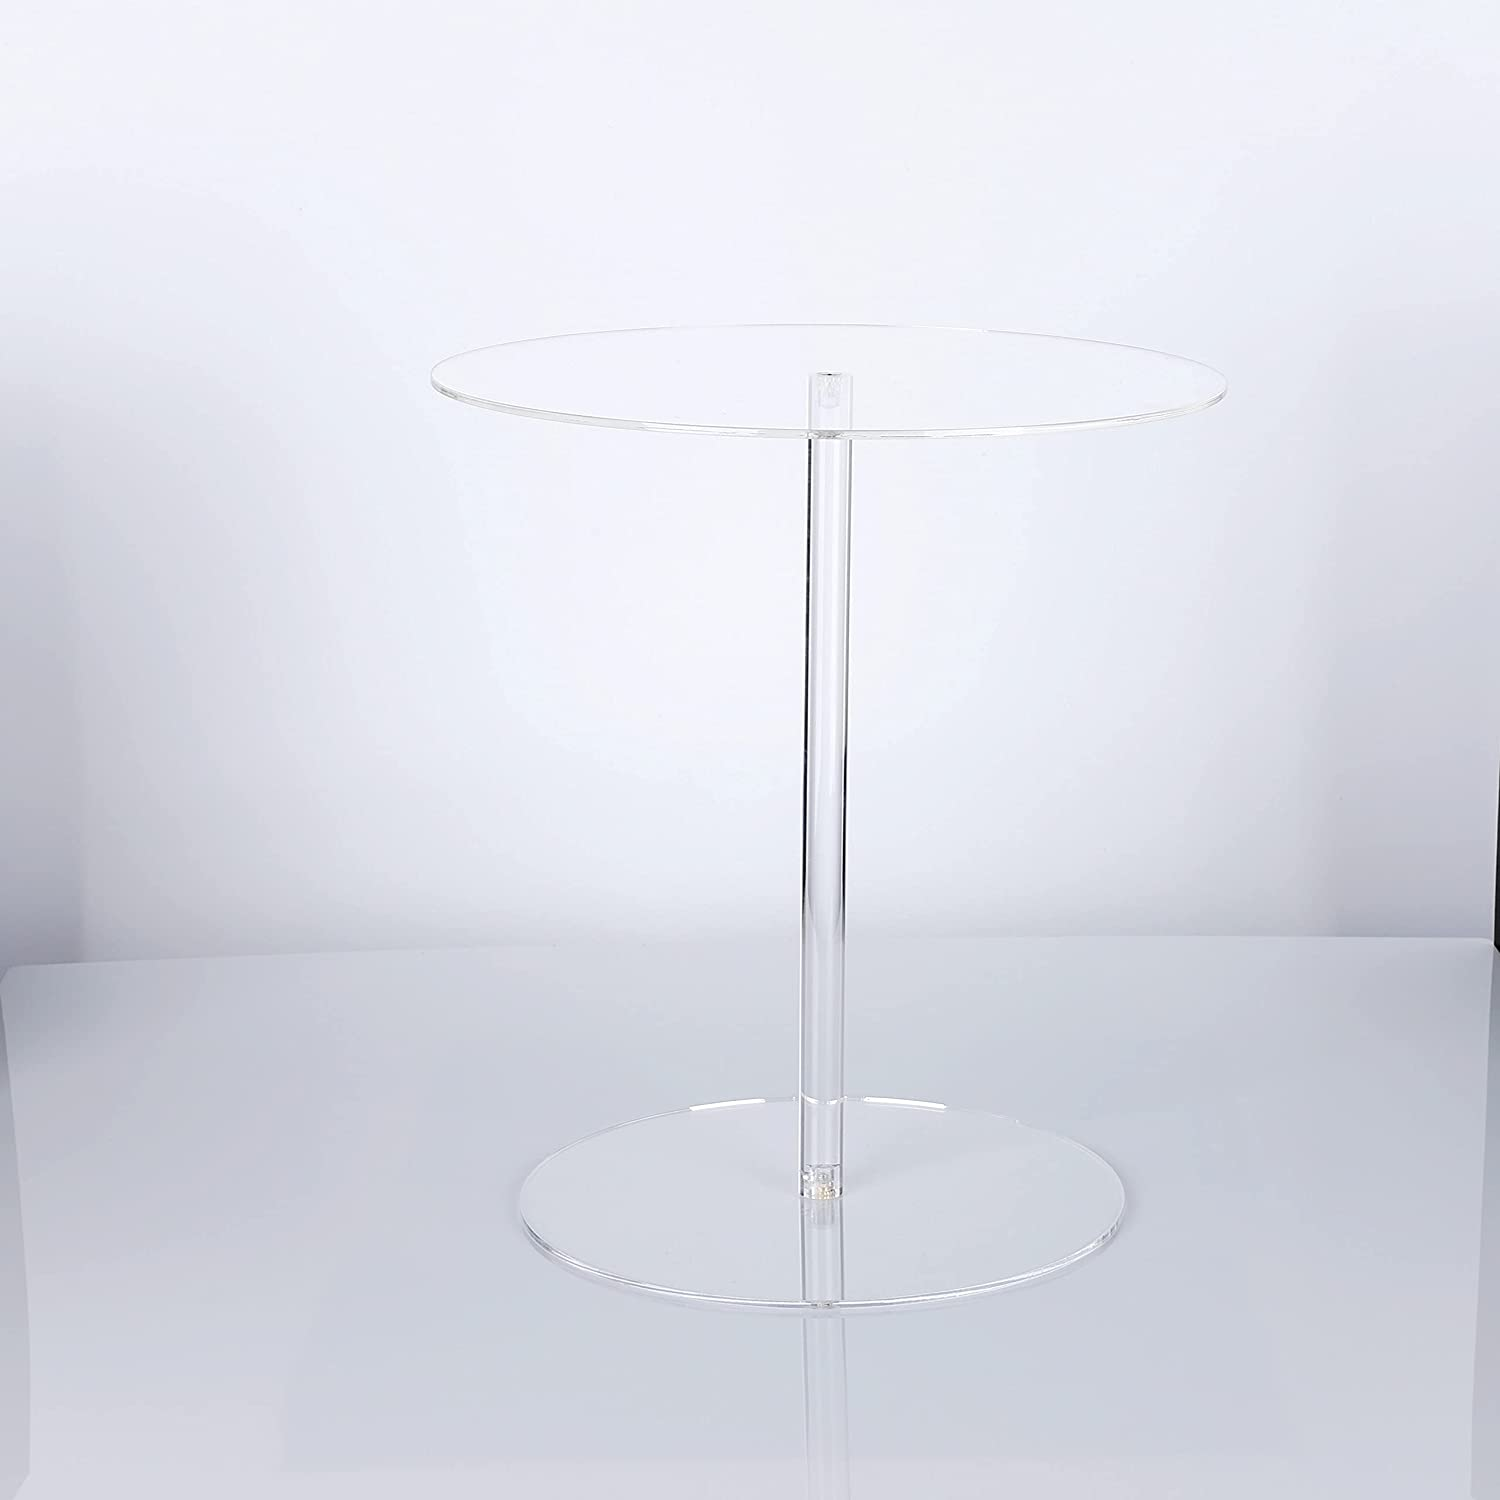 HESIN Clear Acrylic Round Pedestal Display Riser Flower Stand 9.